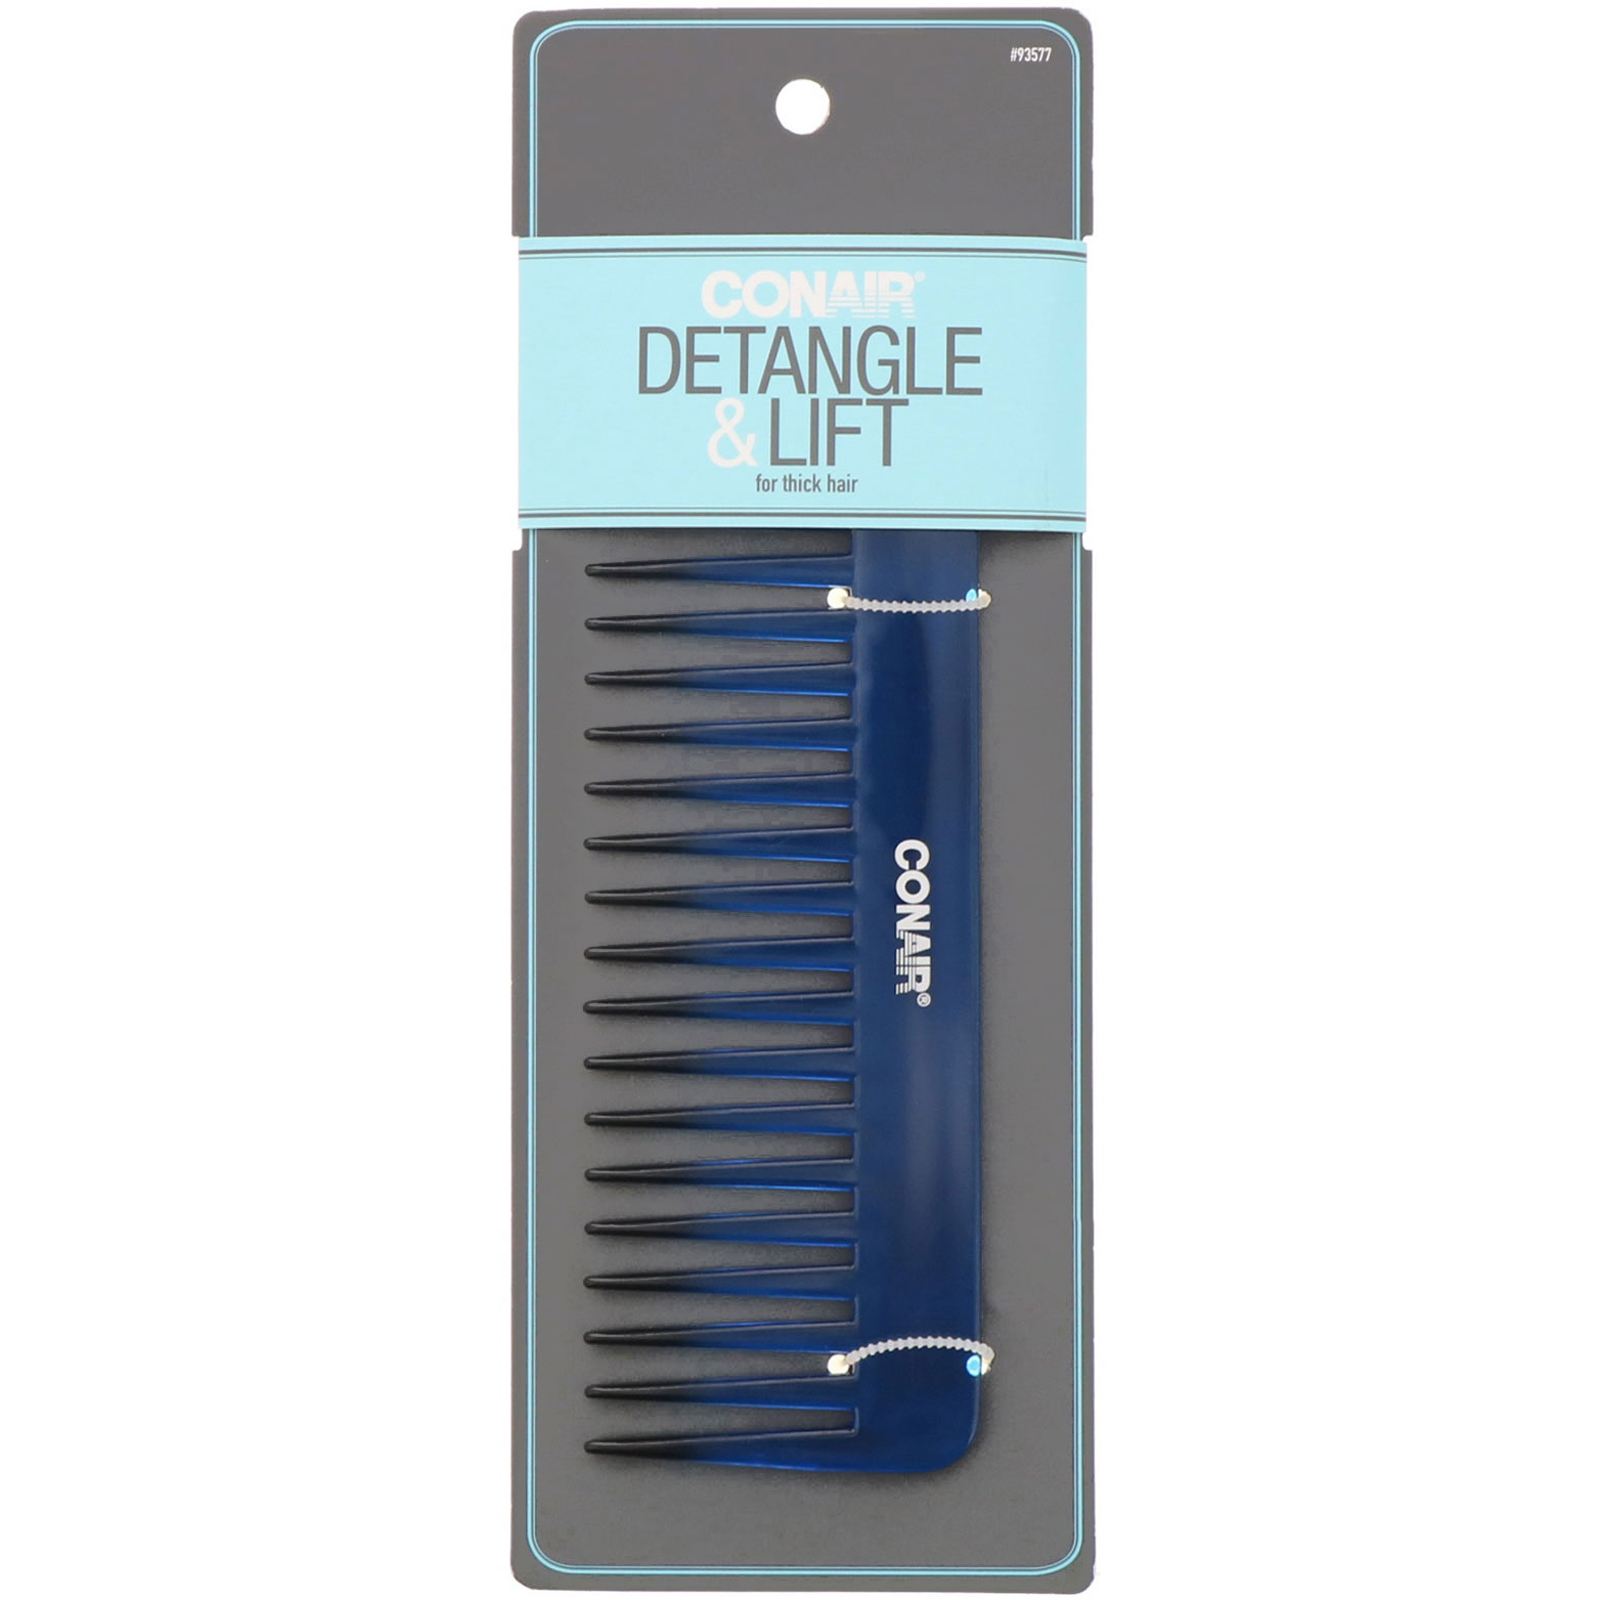 HYOUJIN601 Black Carbon Wide Tooth Comb Rake Beard Comb,Detangler Hair Comb-Coming long wet hair,Hair Straighten-best for all kinds of hair especially curly hair heat-Resistant DR